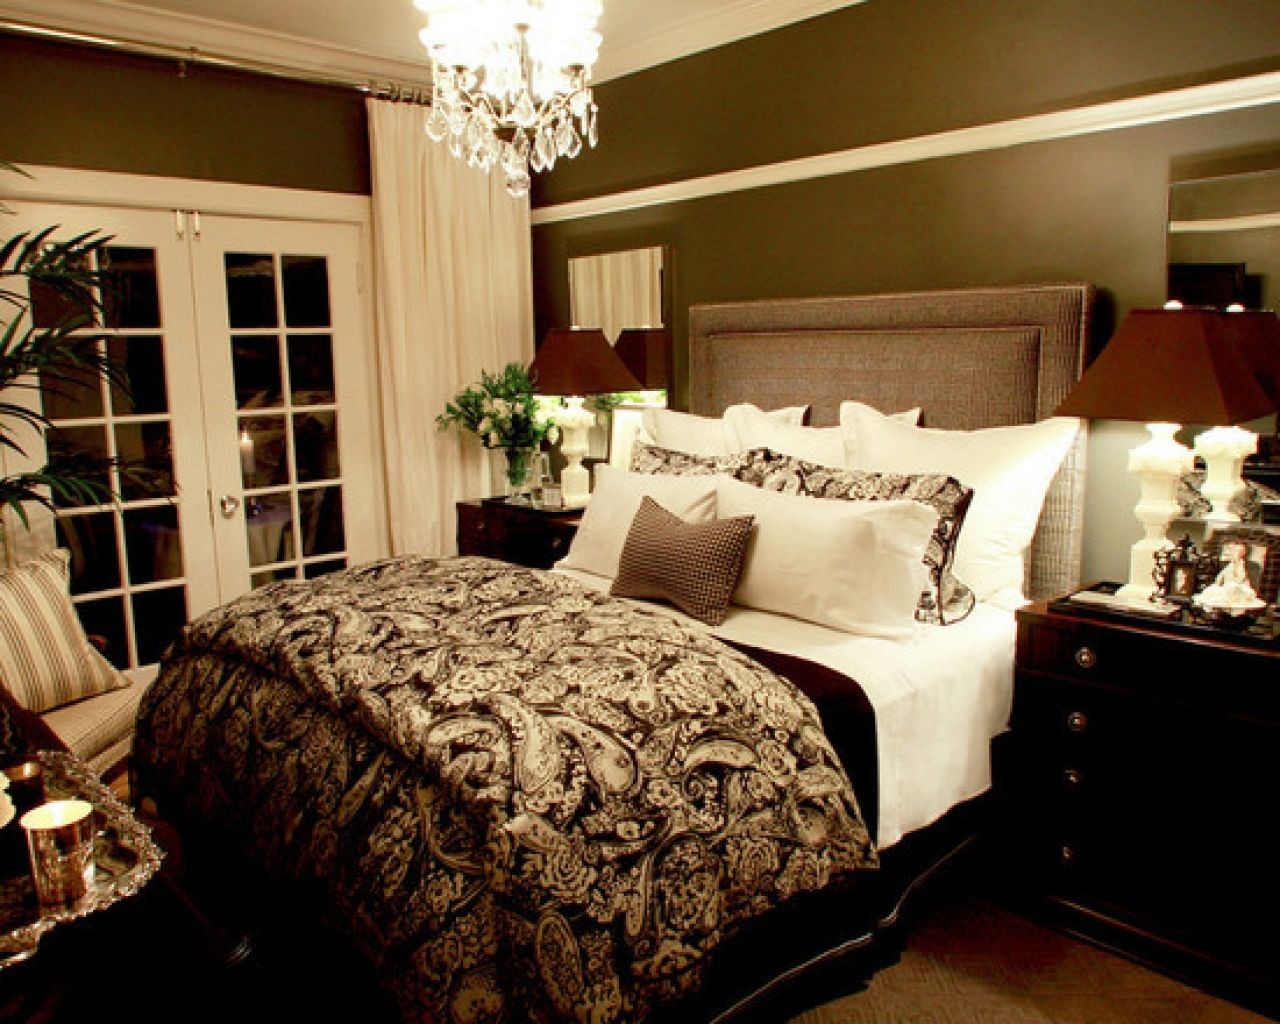 Living Room Pinterest Bedroom Ideas 1000 images about bedroom ideas on pinterest country style bedrooms and french bedrooms